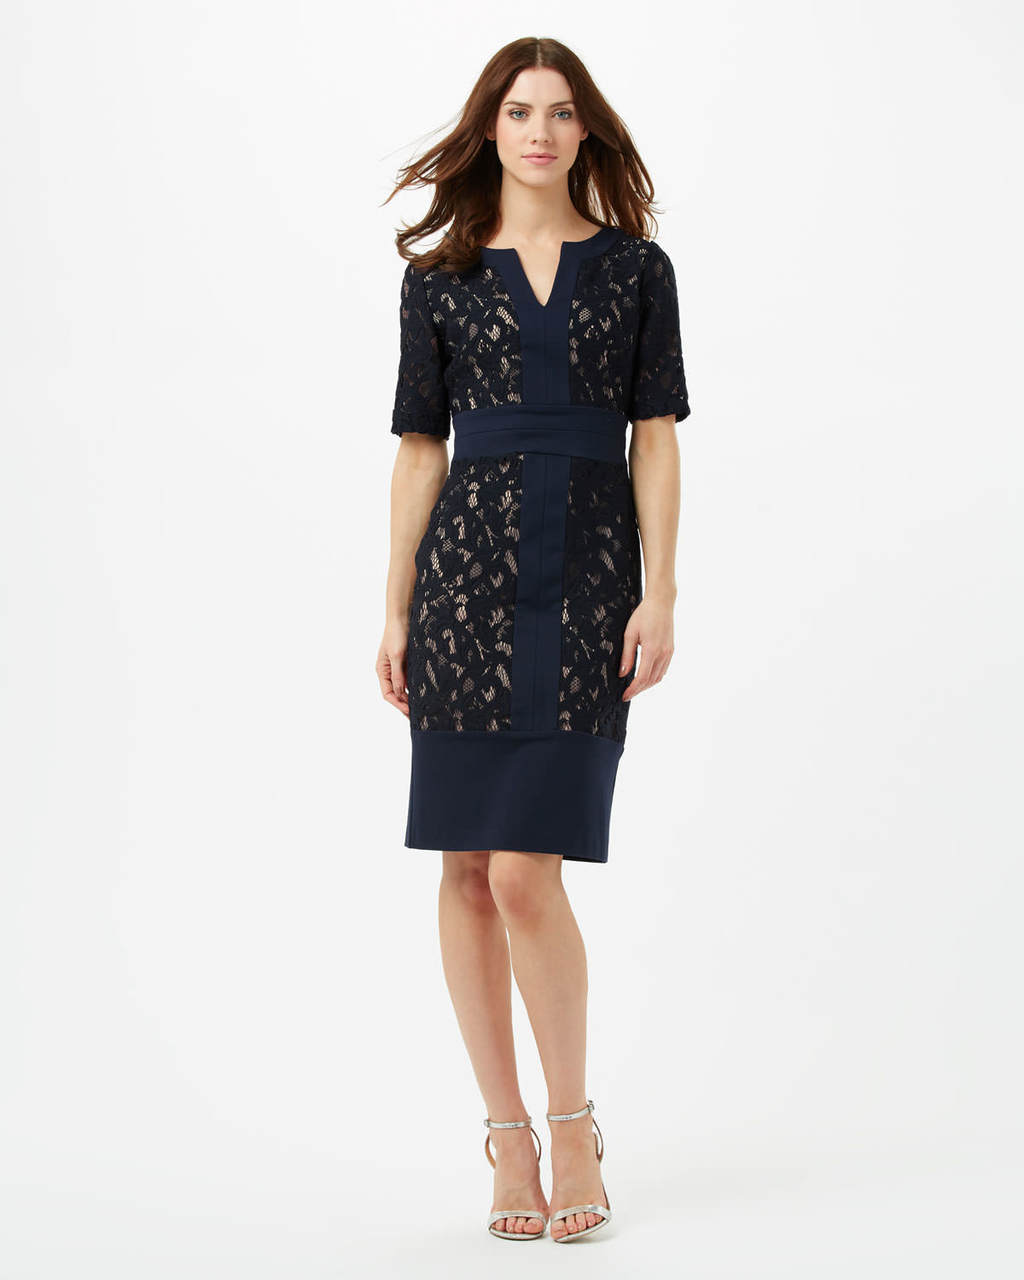 Luisa Lace Ponte Dress - style: shift; neckline: v-neck; fit: tailored/fitted; waist detail: belted waist/tie at waist/drawstring; predominant colour: navy; secondary colour: stone; length: just above the knee; fibres: viscose/rayon - stretch; occasions: occasion; sleeve length: short sleeve; sleeve style: standard; texture group: lace; pattern type: fabric; pattern size: standard; pattern: patterned/print; embellishment: lace; season: s/s 2016; wardrobe: event